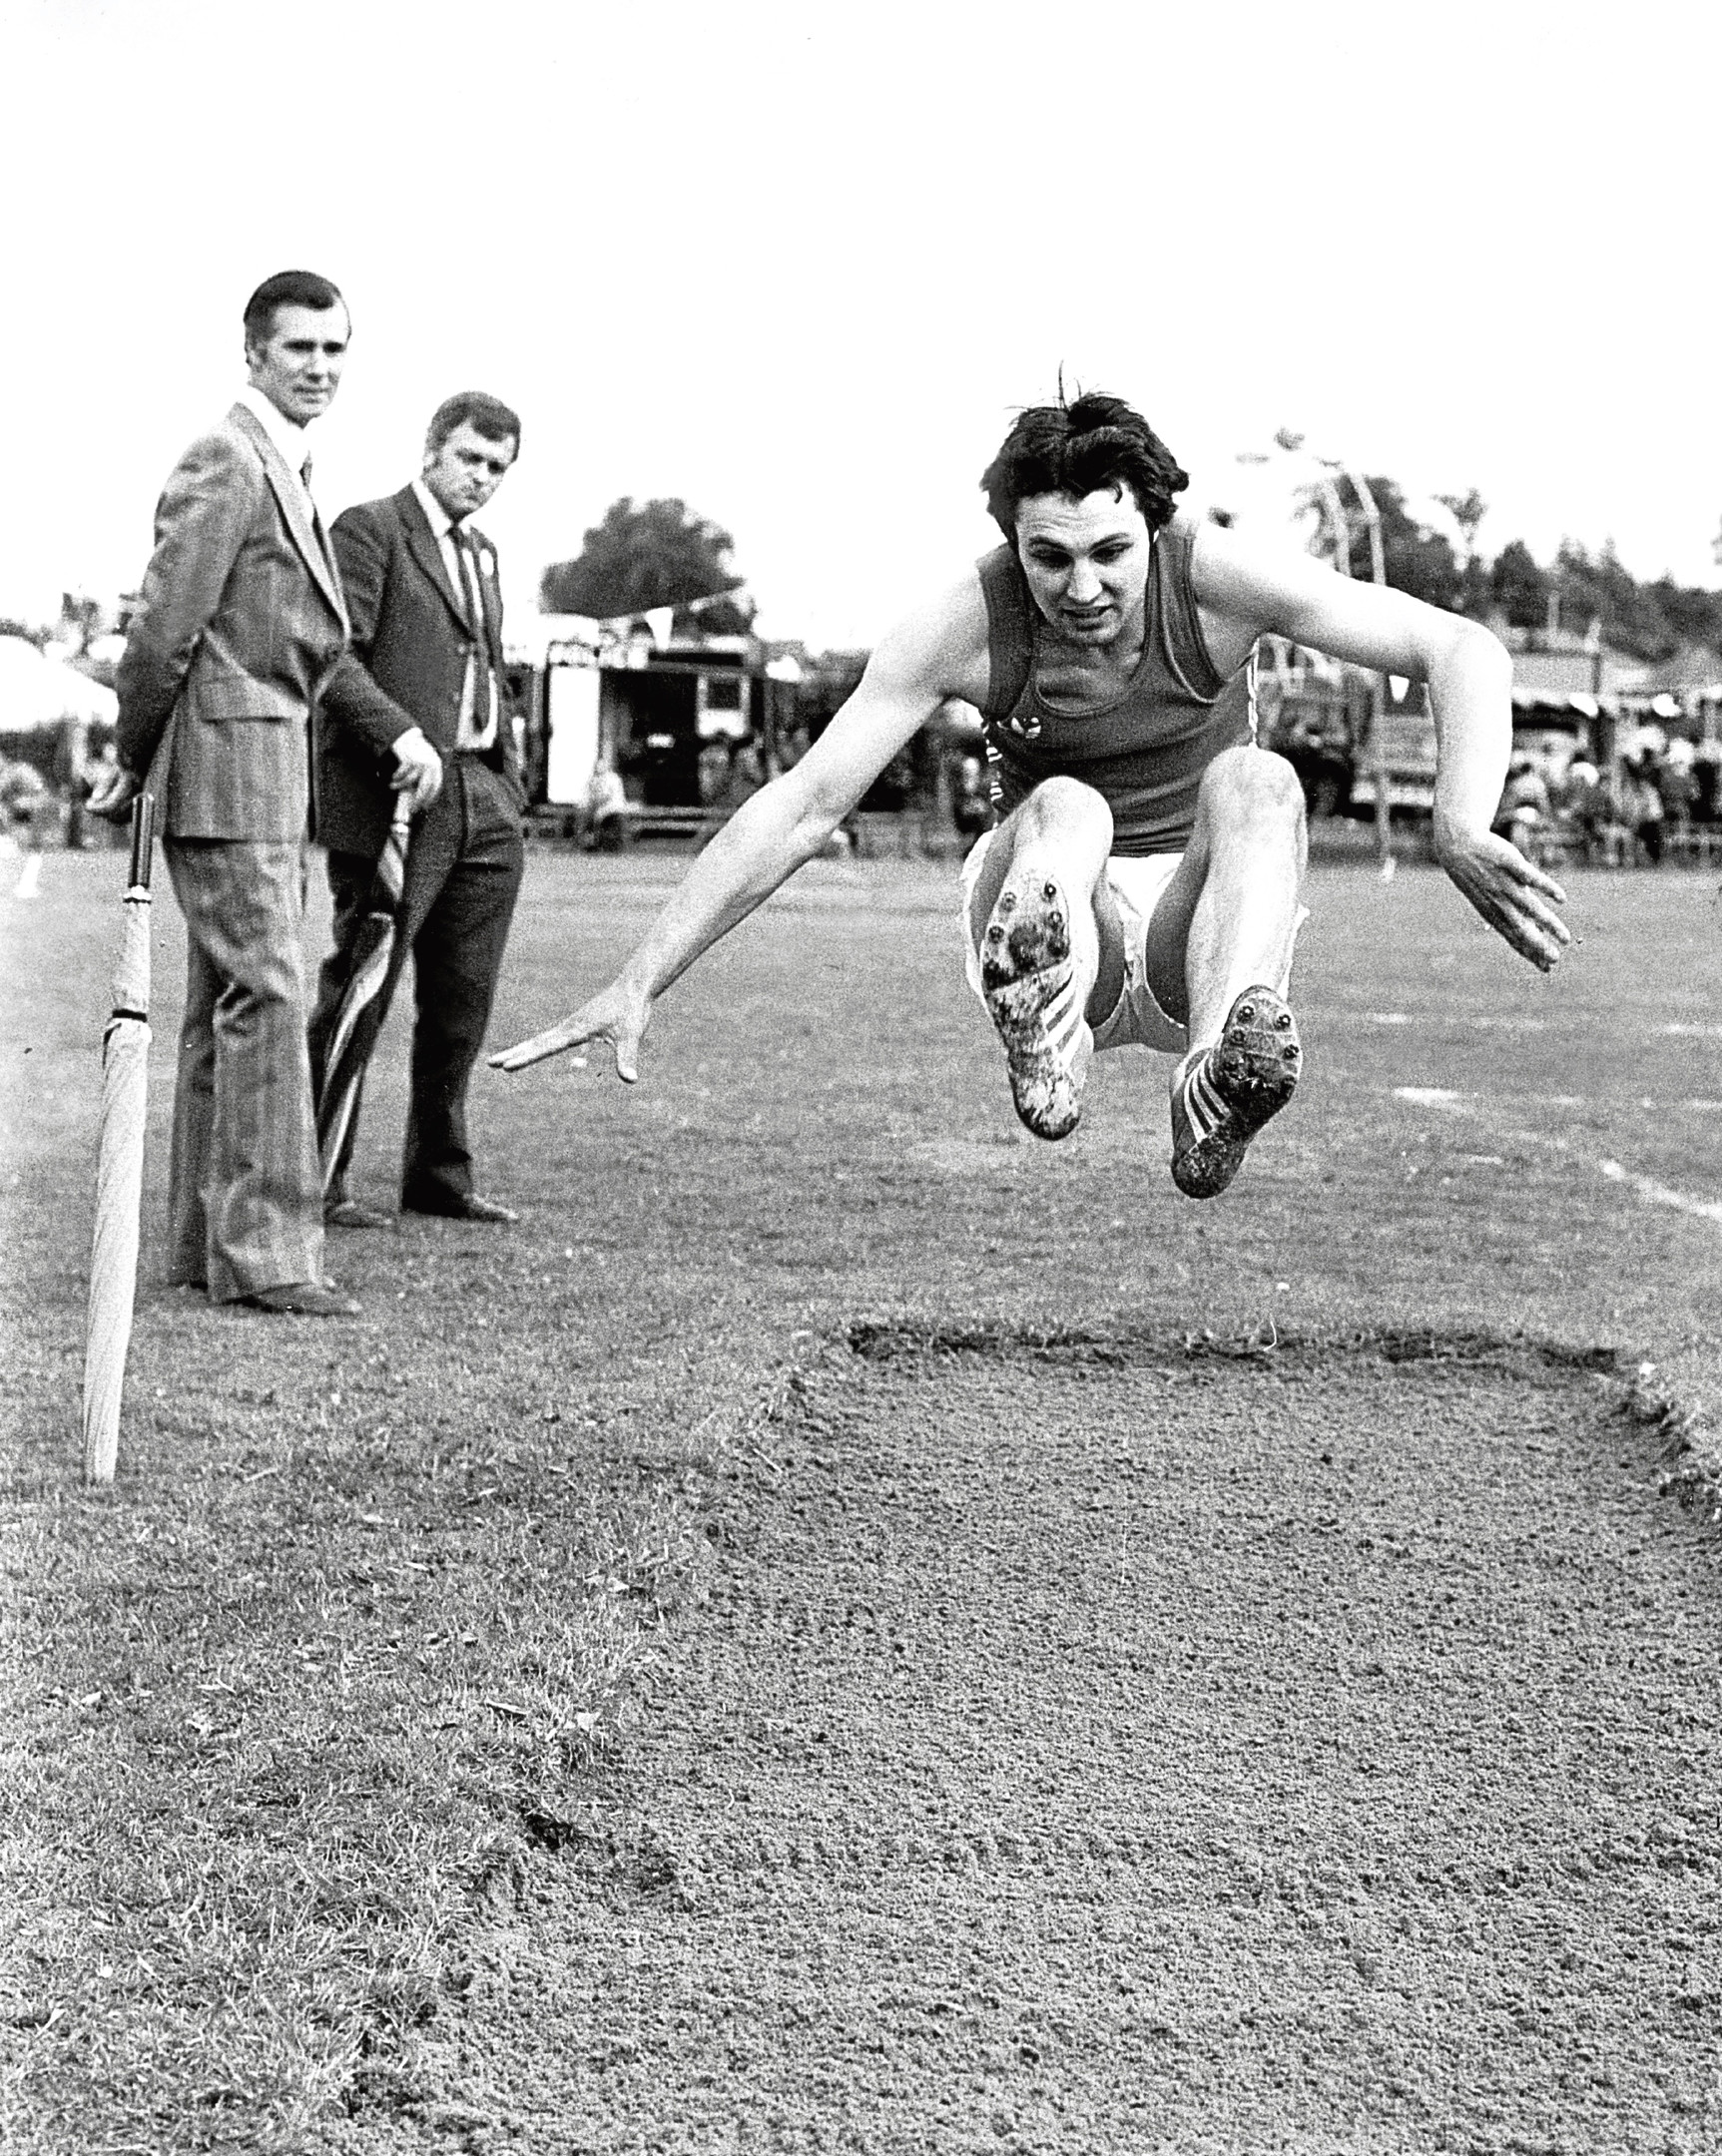 Derek Reid from Insch flies though the air in his attempt at the long jump.